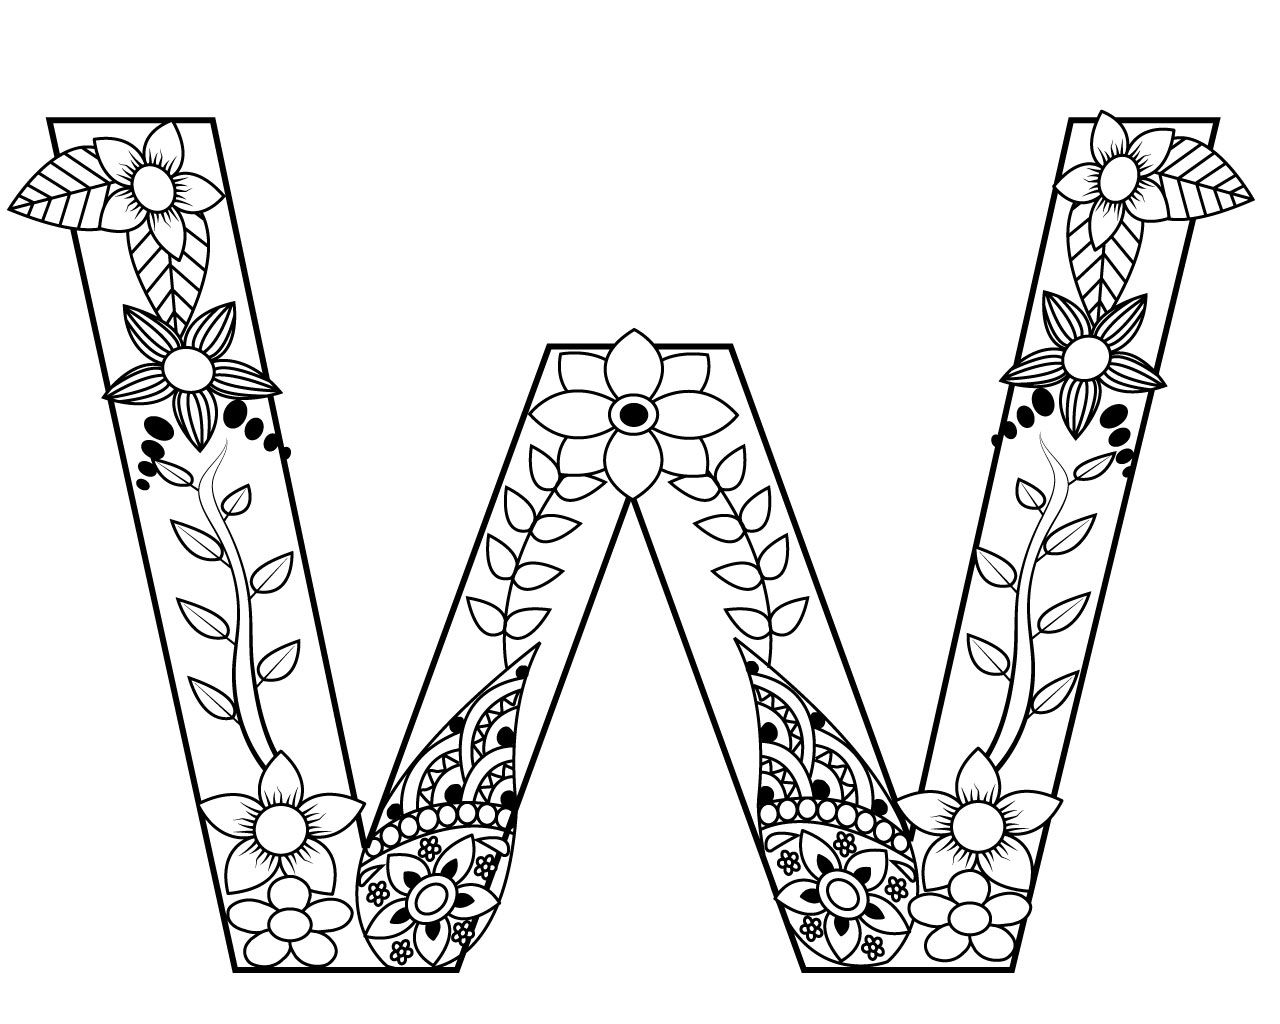 Letter W Coloring Pages For Adults Barbie Coloring Pages Coloring Pages Printable Adult Coloring Pages